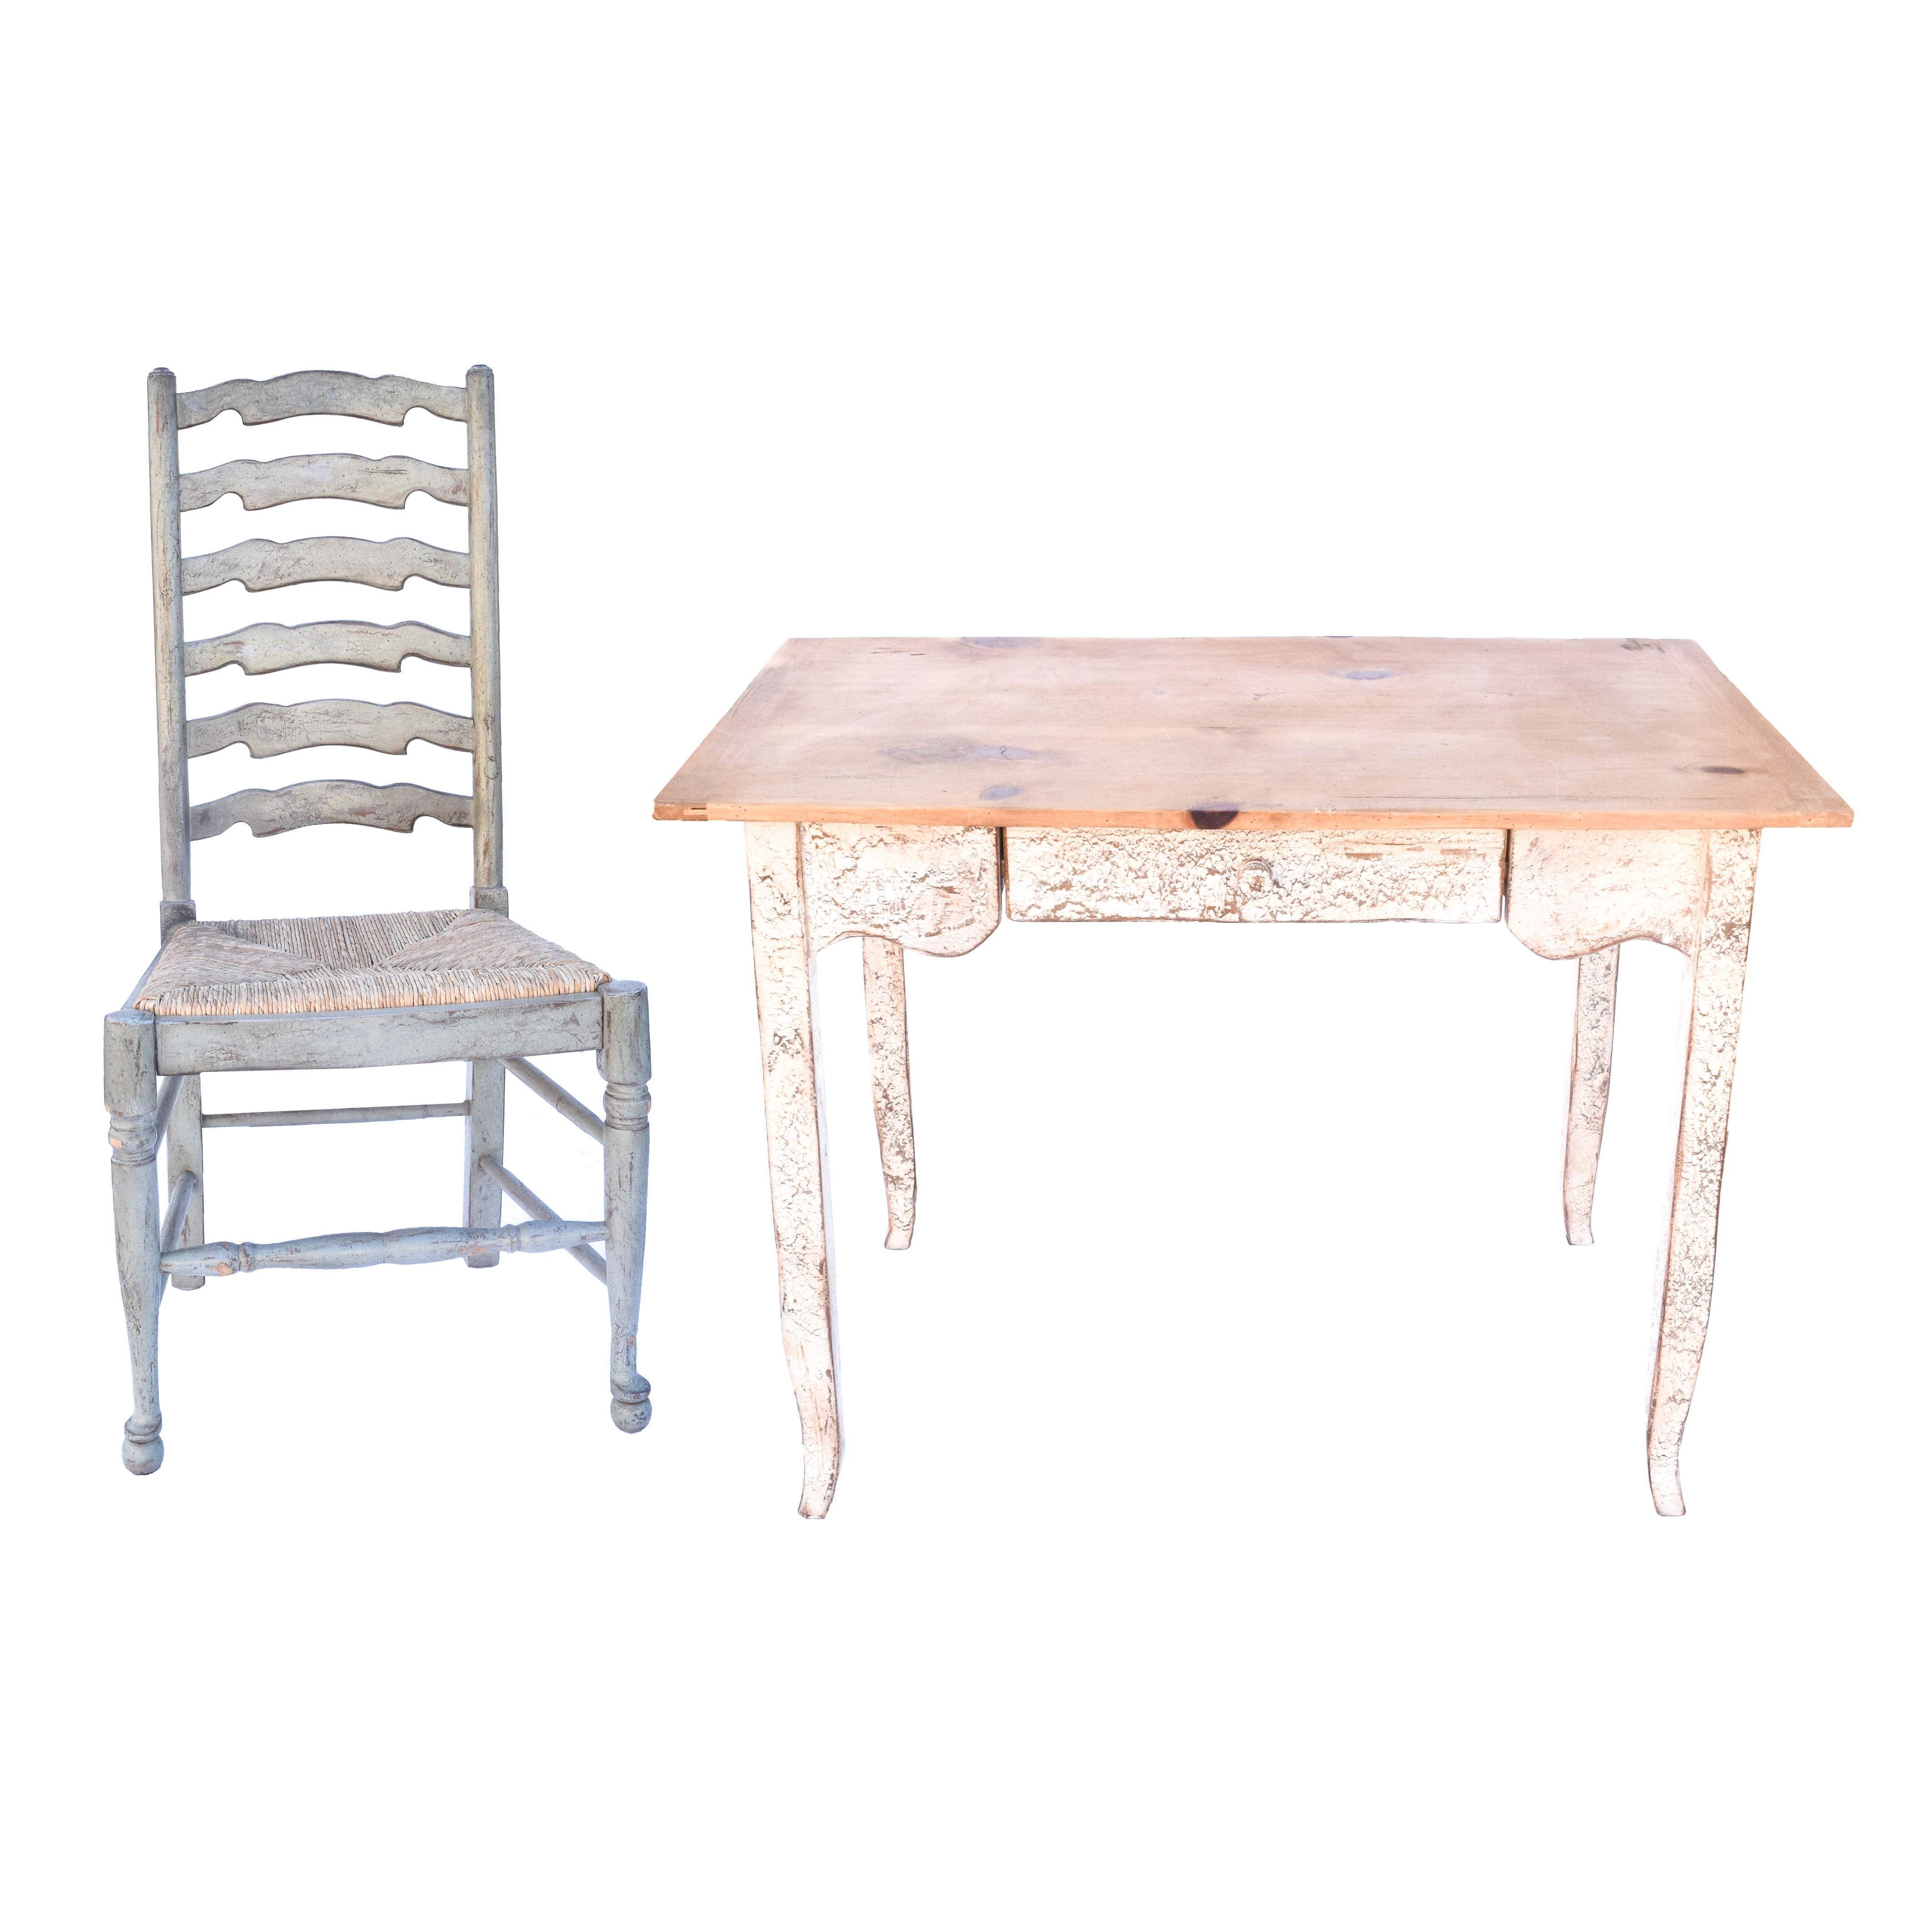 Farmhouse Style Desk and Ladderback Chair